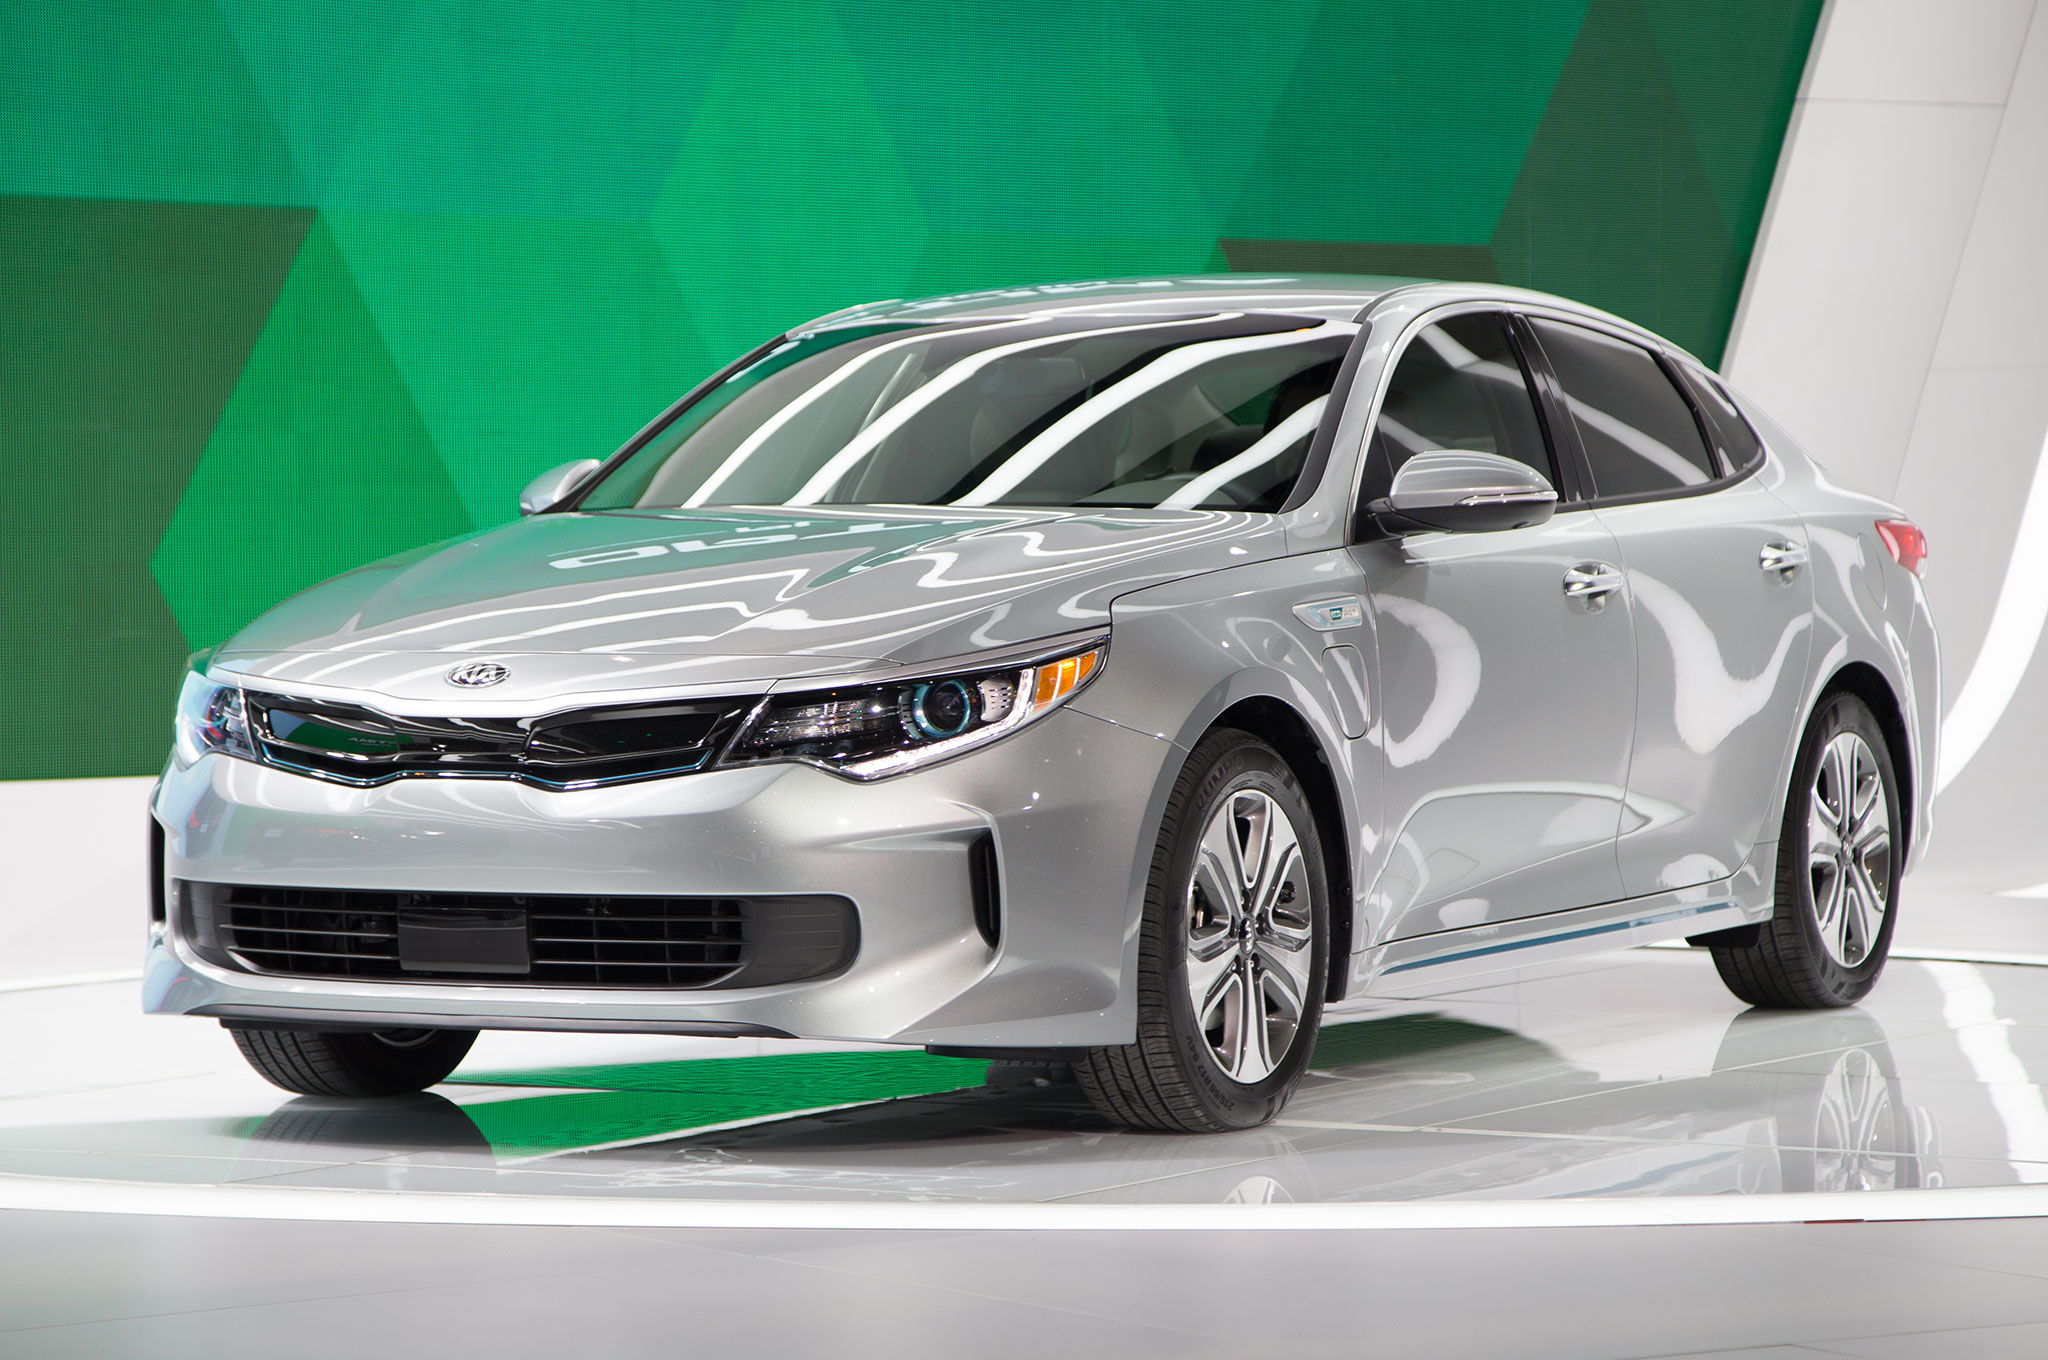 2017 Kia Optima Hybrid Brings Improved Efficiency, New Plug-In Model